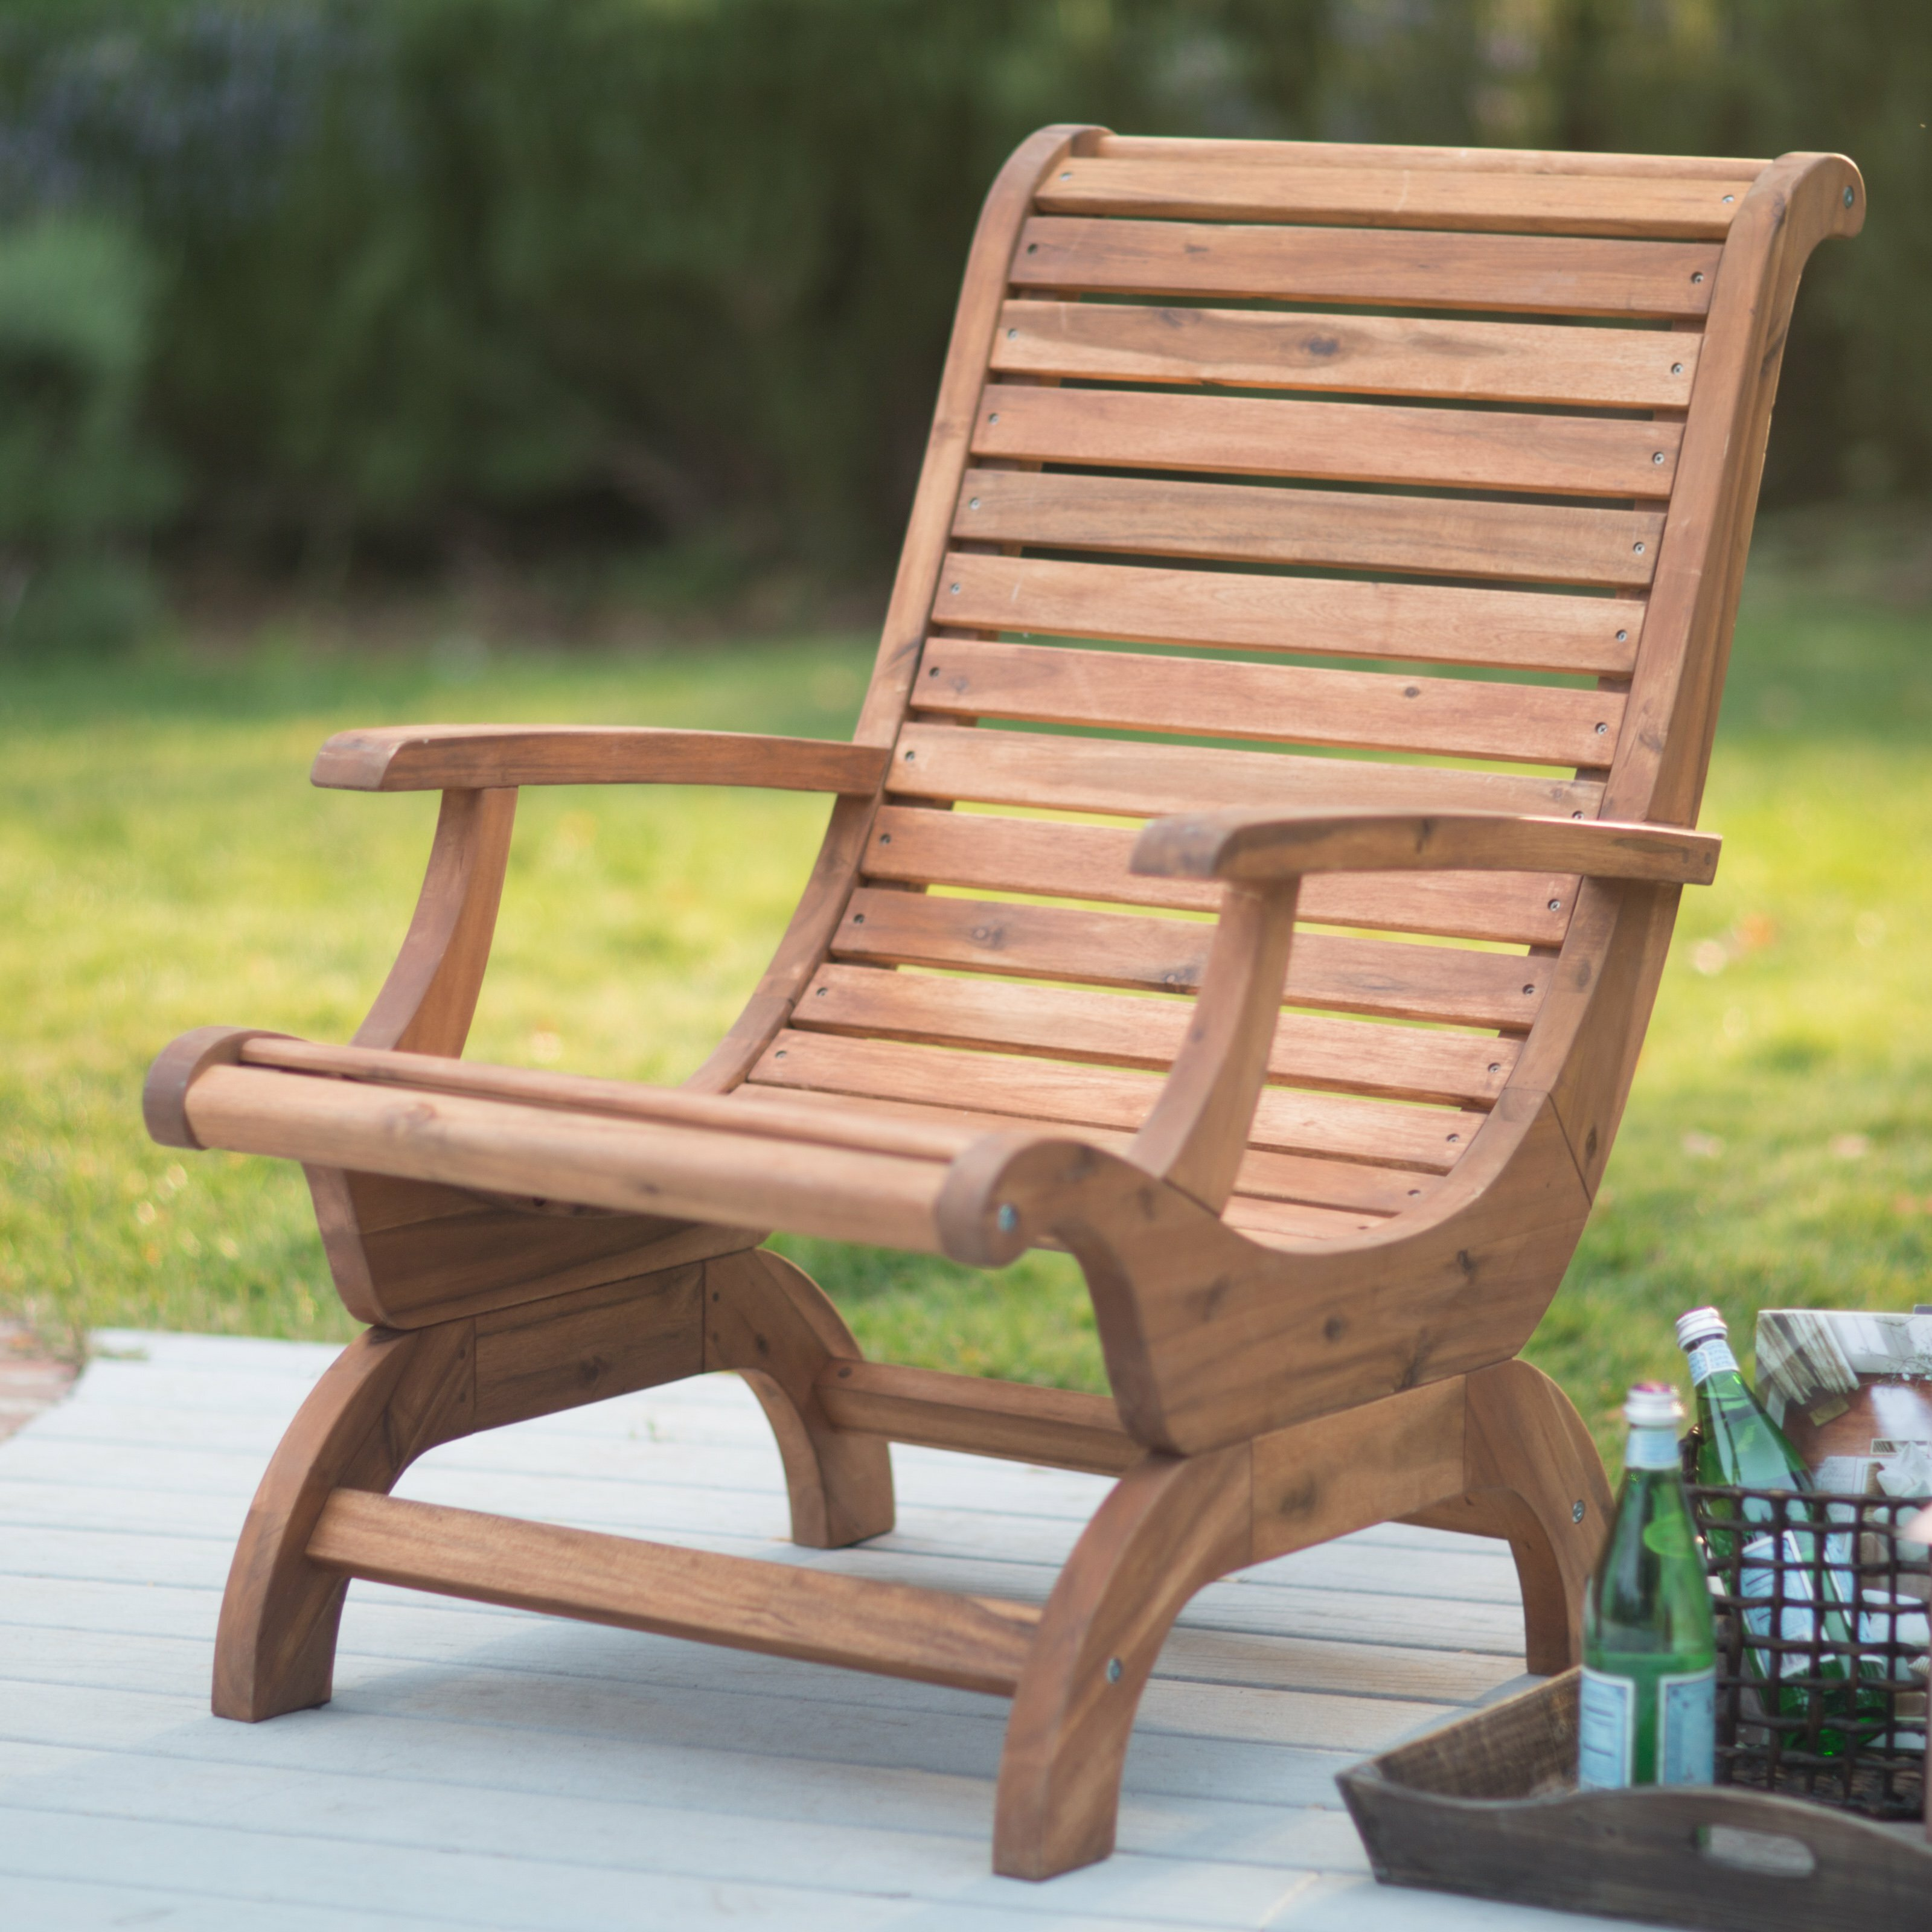 Lovely Lowes Wicker Patio Furniture